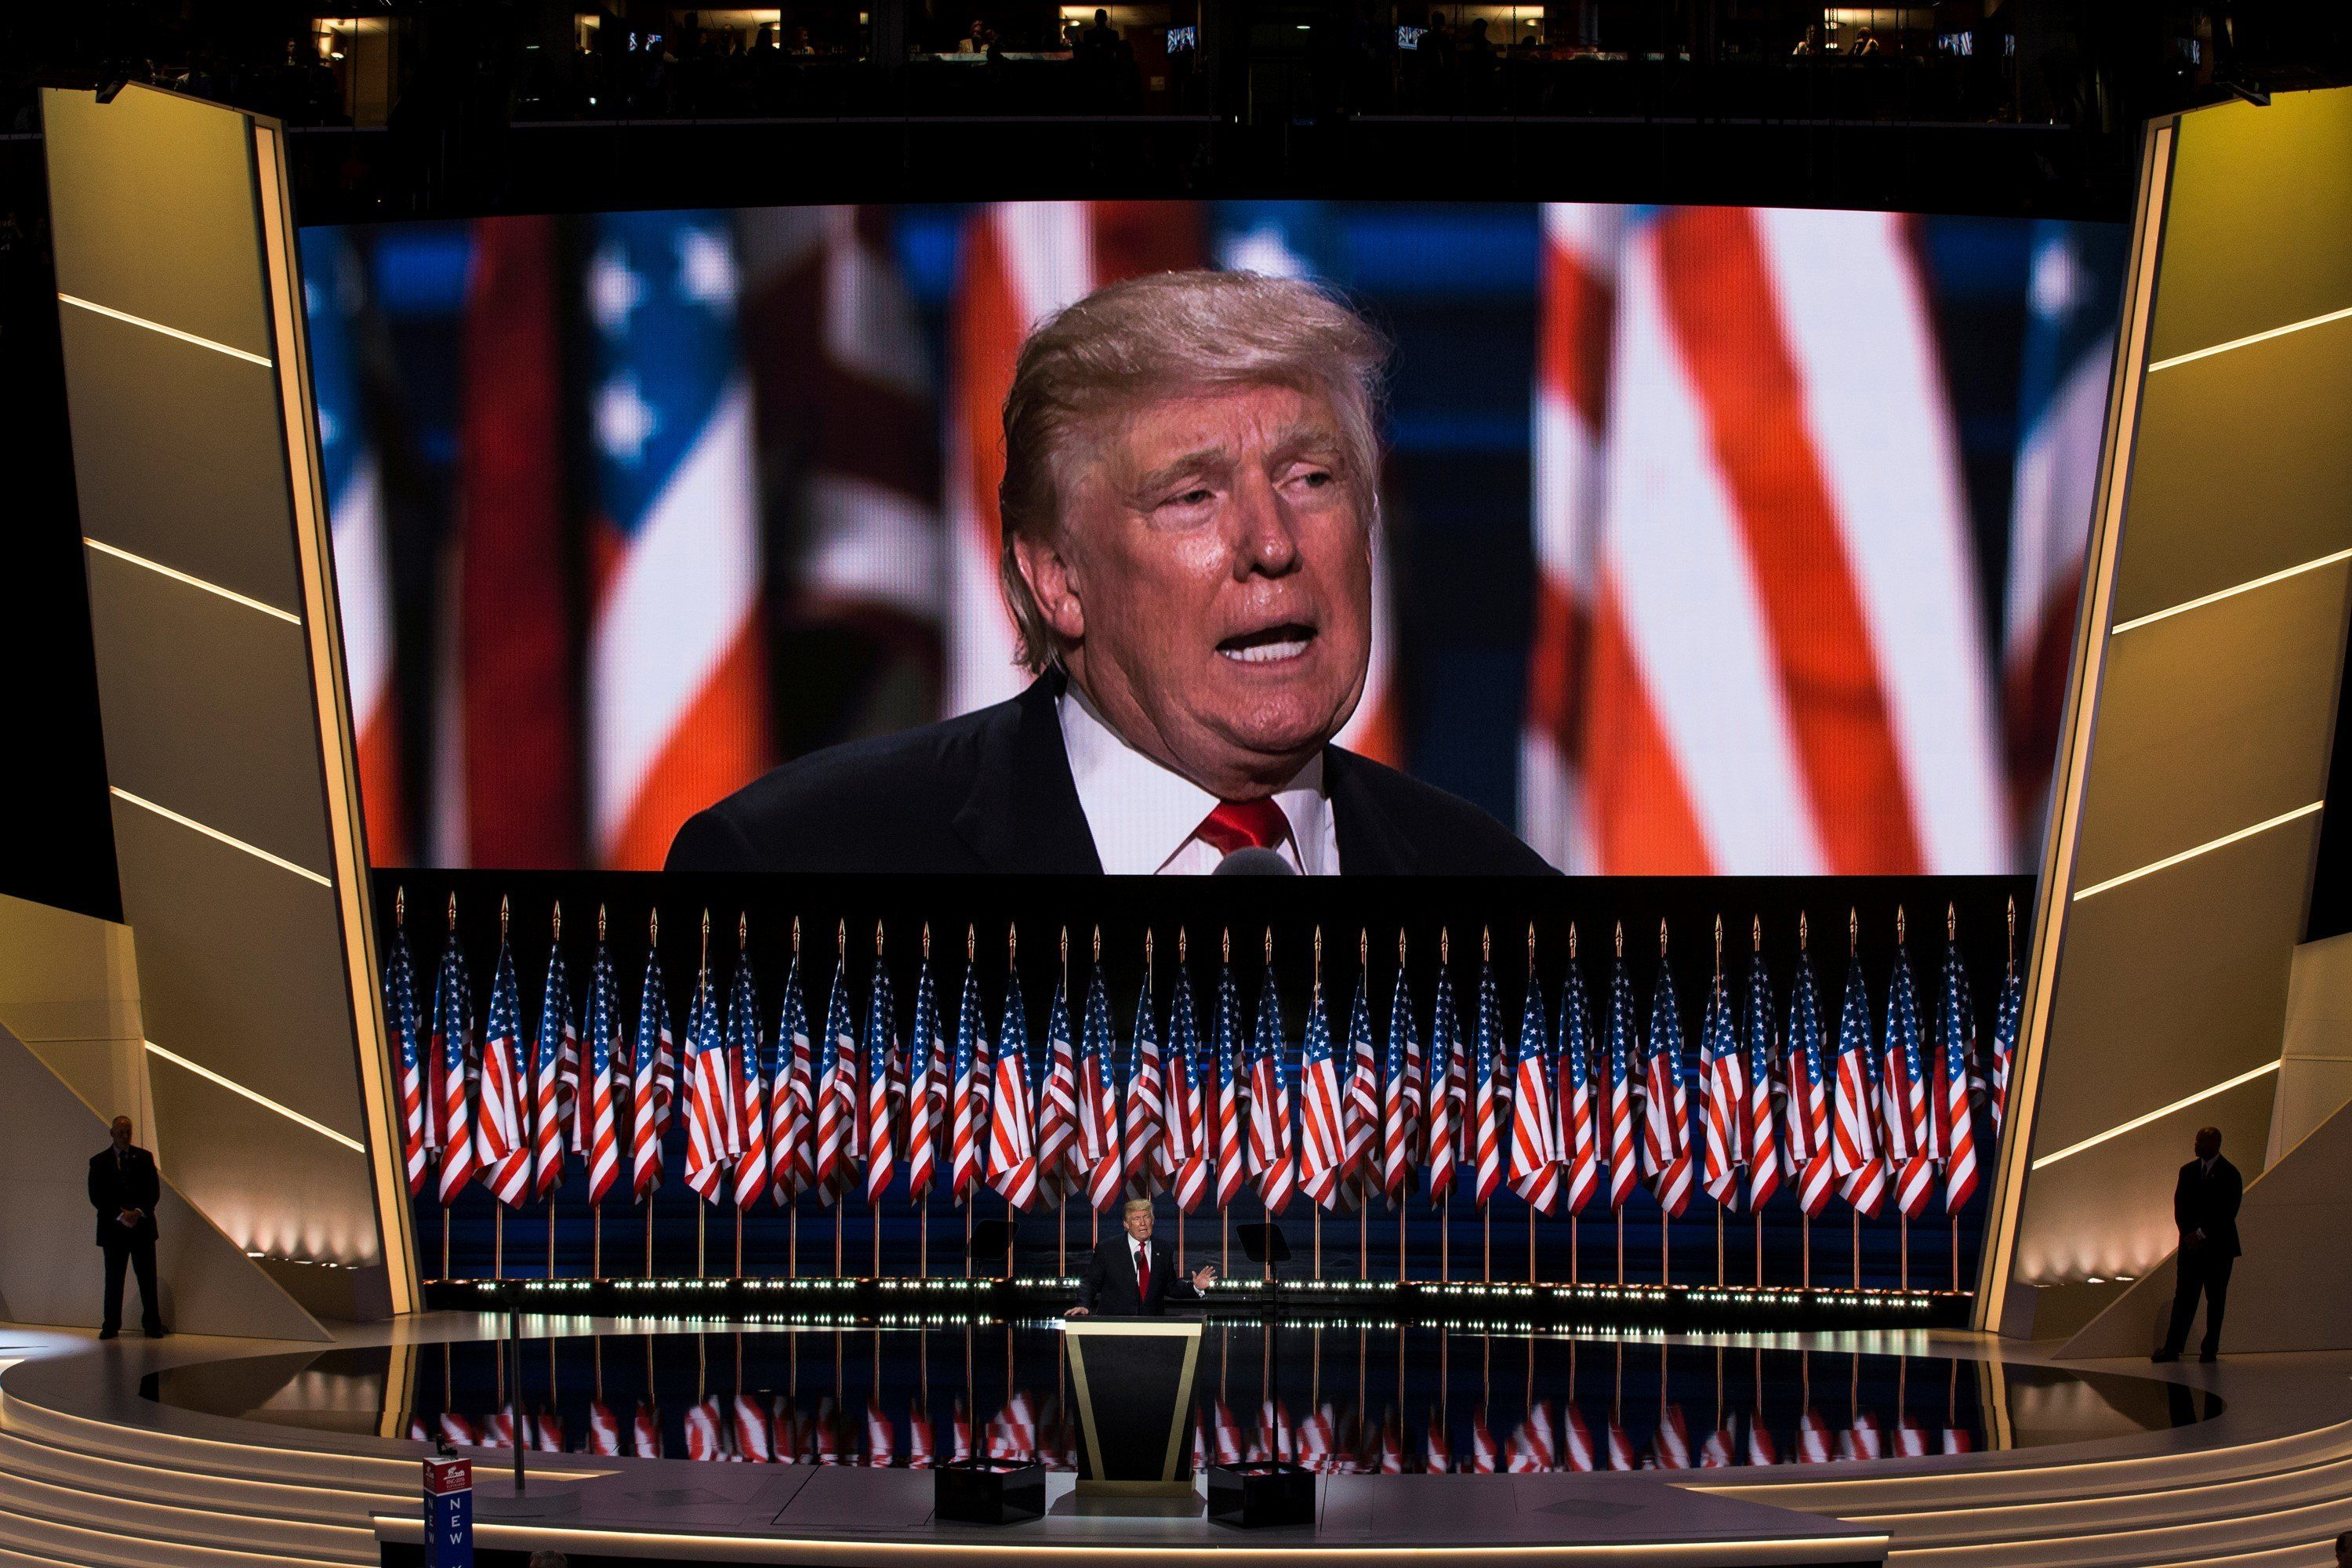 CLEVELAND, USA - JULY 21: Donald Trump accepts the Republican nomination for President at the 2016 Republican National Convention in Cleveland, Ohio, USA on July 21, 2016. (Photo by Samuel Corum/Anadolu Agency/Getty Images)